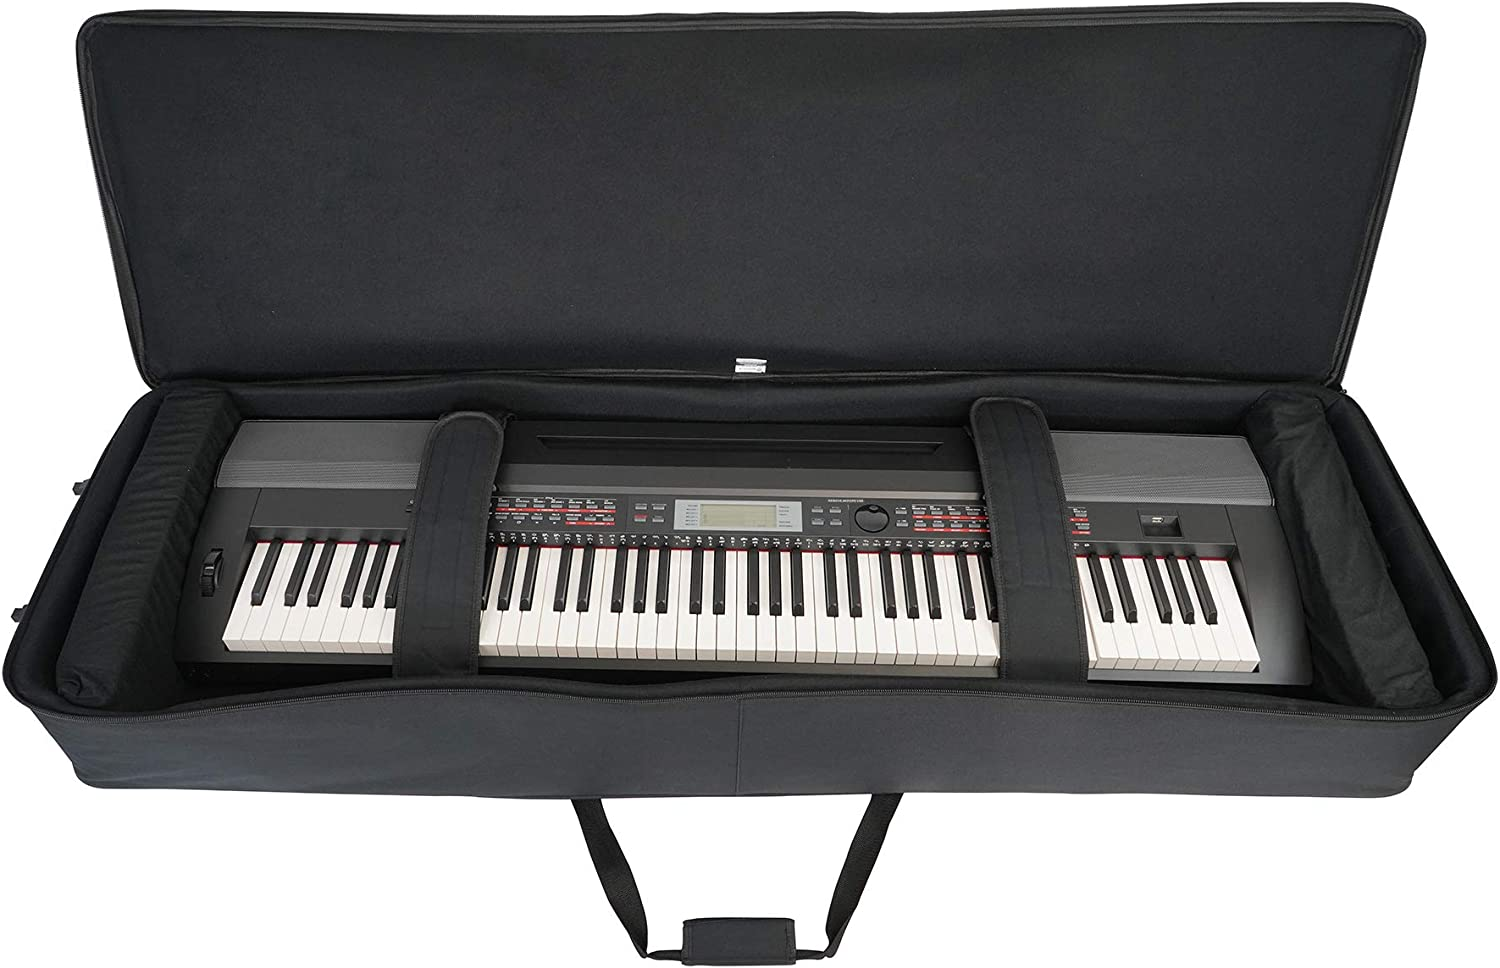 Rockville 76 Key Keyboard Case w// Wheels+Trolley Handle For Korg TRITON LE 76